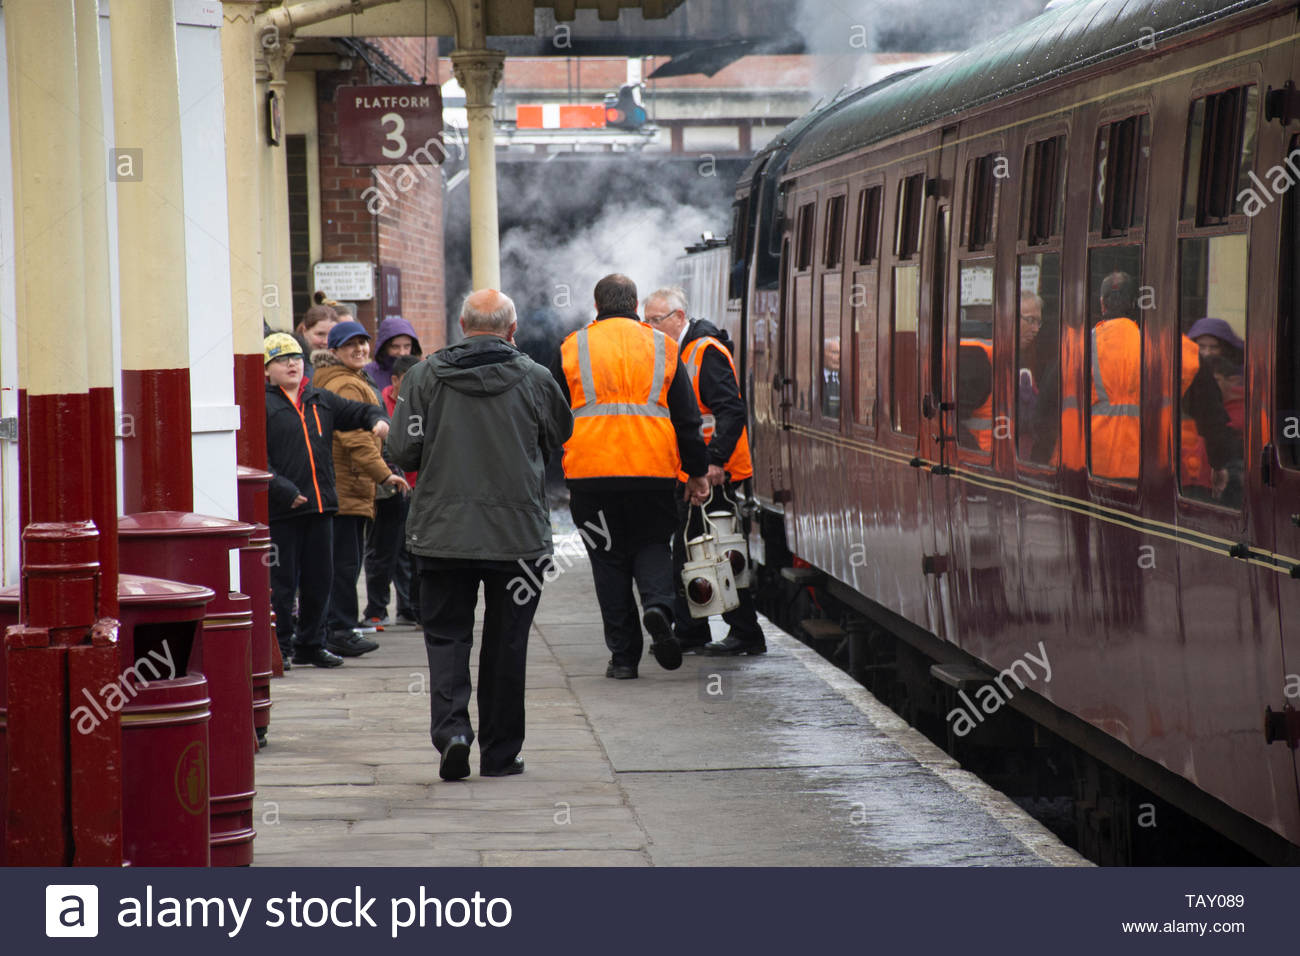 Staff and passengers on the plaform at the East Lancs Railway, a heritage line in Bury, Lancashire, UK - Stock Image